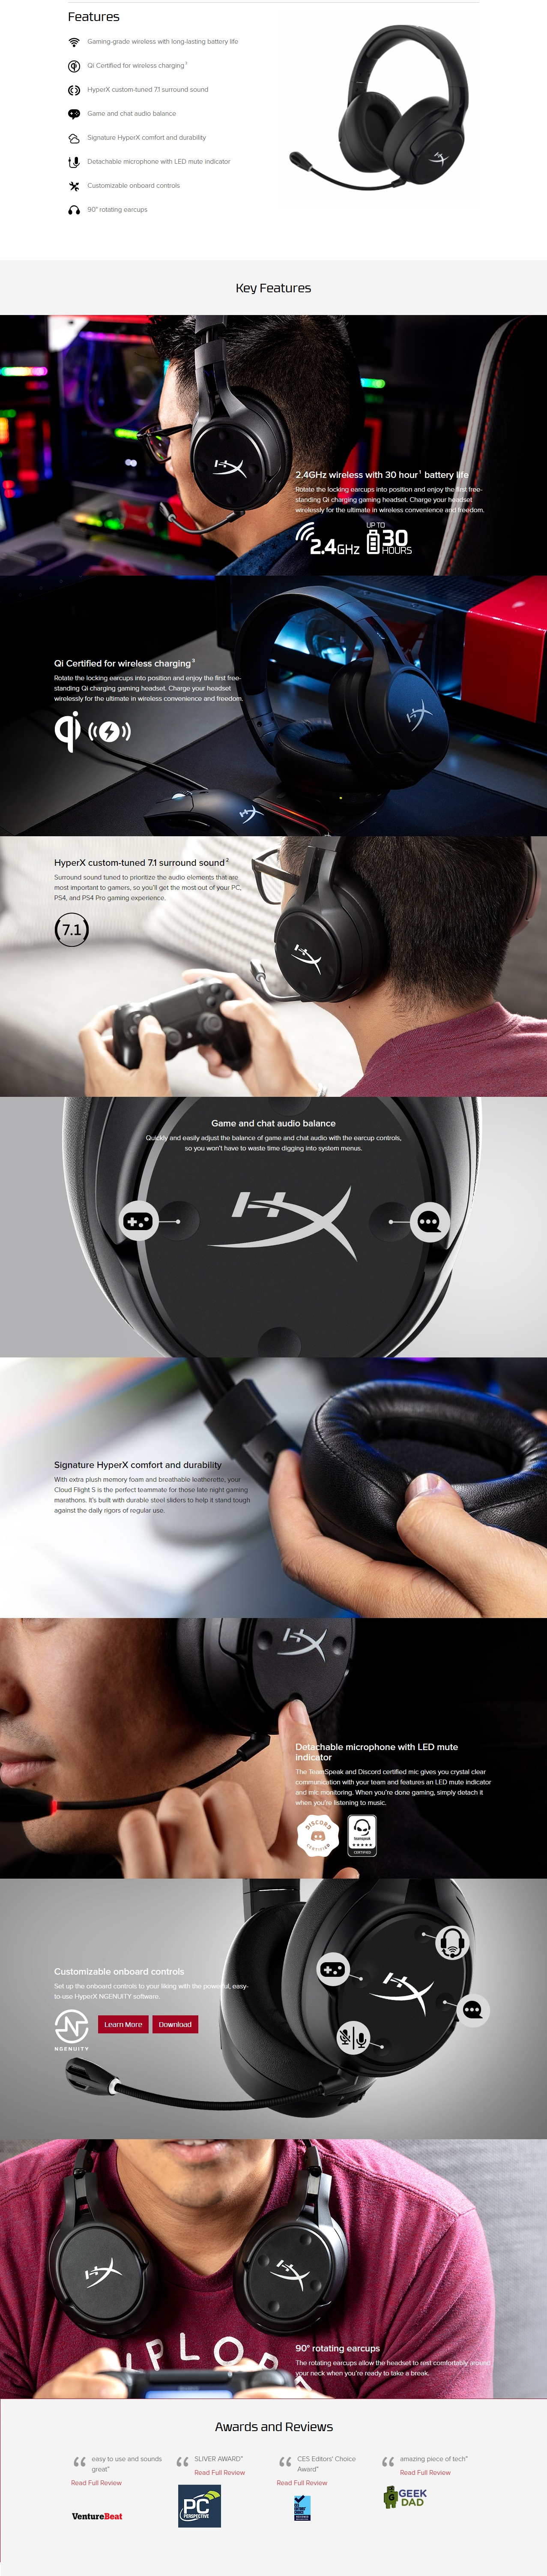 A large marketing image providing additional information about the product Kingston HyperX Cloud Flight S Wireless Gaming Headset - Additional alt info not provided